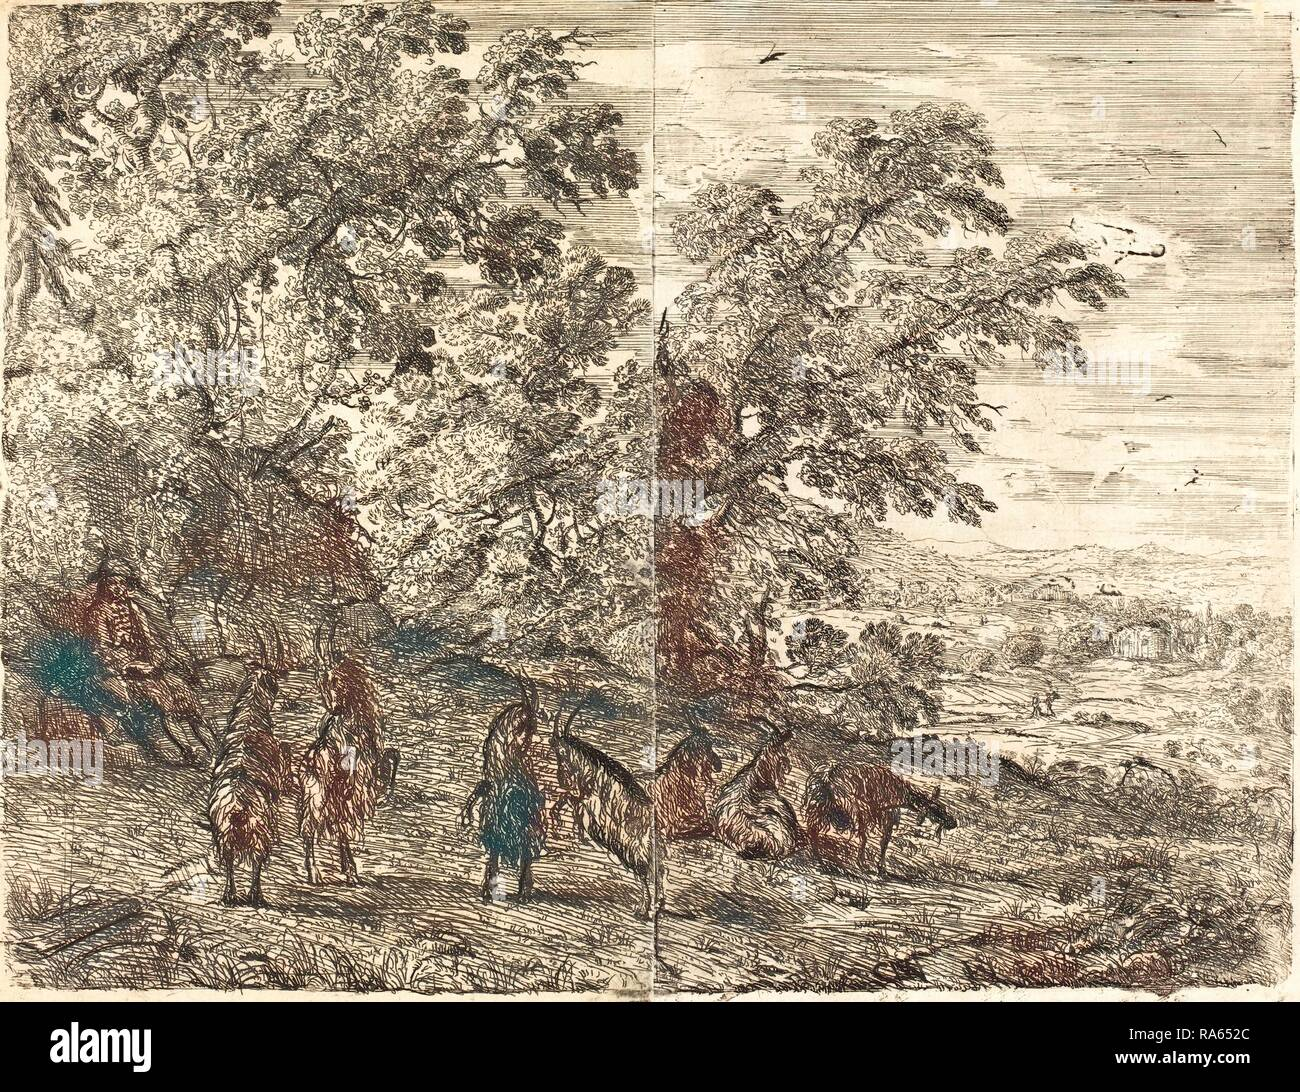 Claude Lorrain, French (1604-1605-1682), Shepherd with Goats (Les chèvres), c. 1630-1633, etching. Reimagined - Stock Image